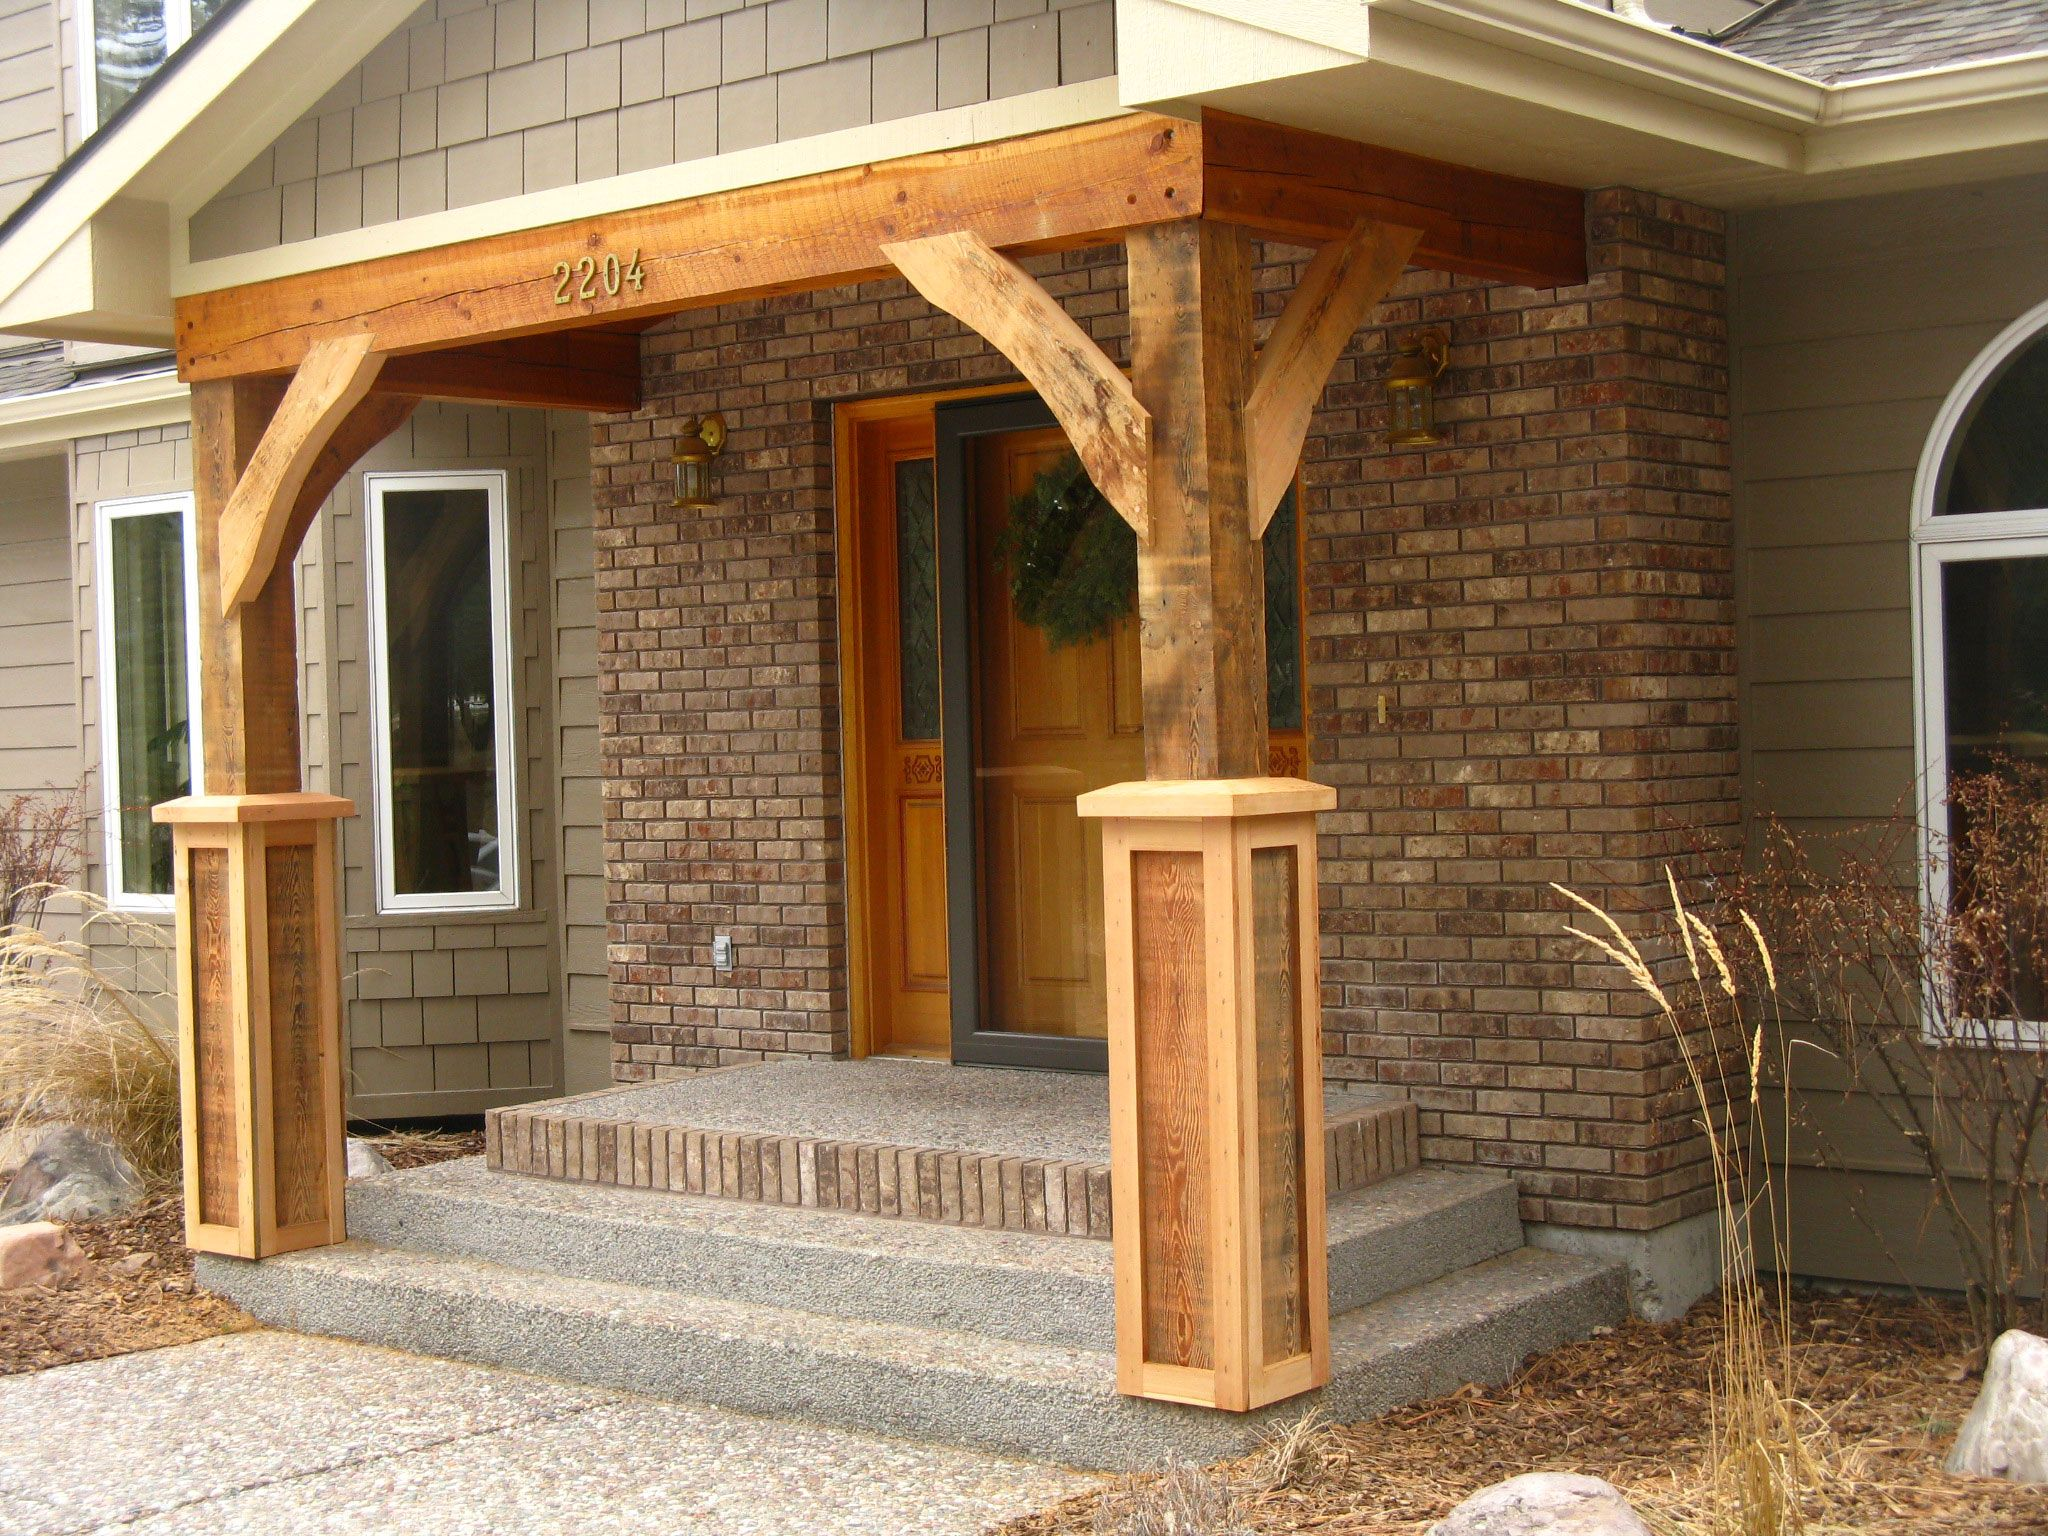 Porch Design porch designs - yahoo! search results | outdoor ideas | pinterest